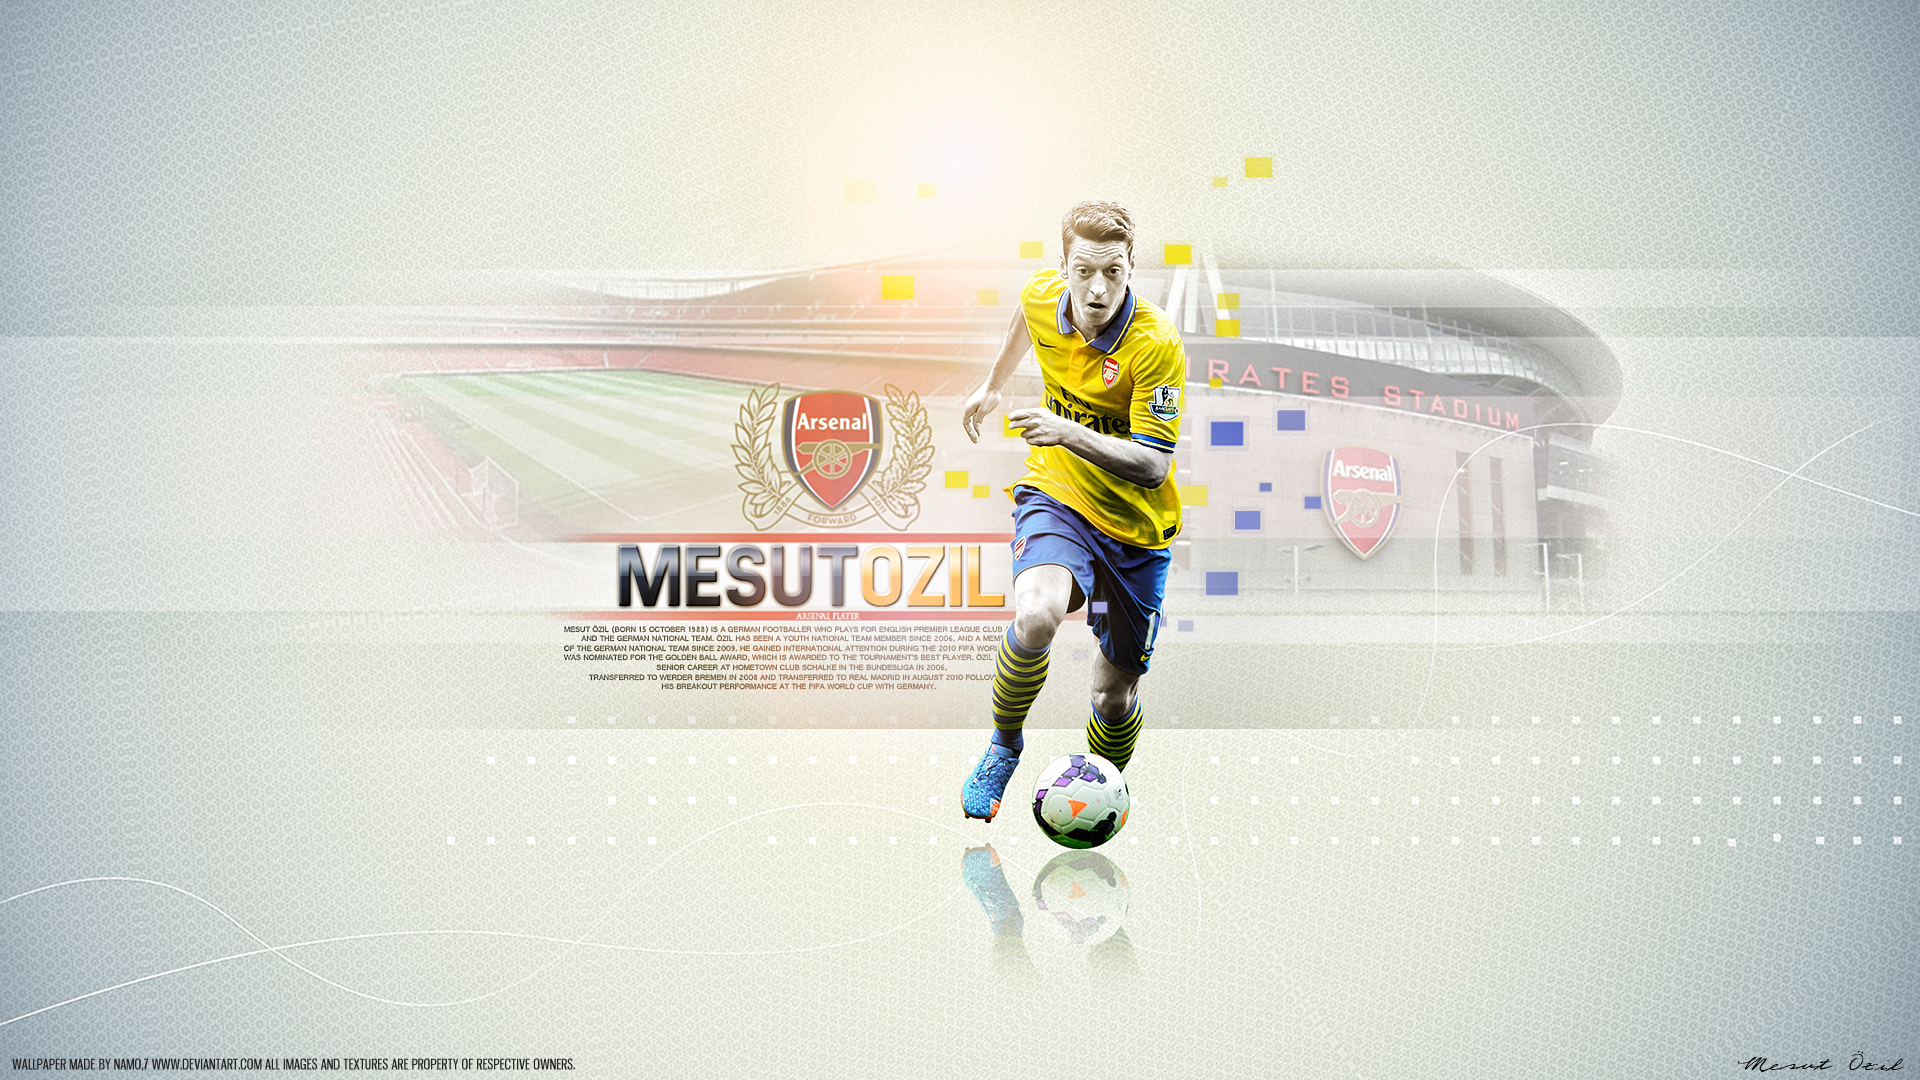 Mesut Özil 11 Arsenal by namo,7 by 445578gfx